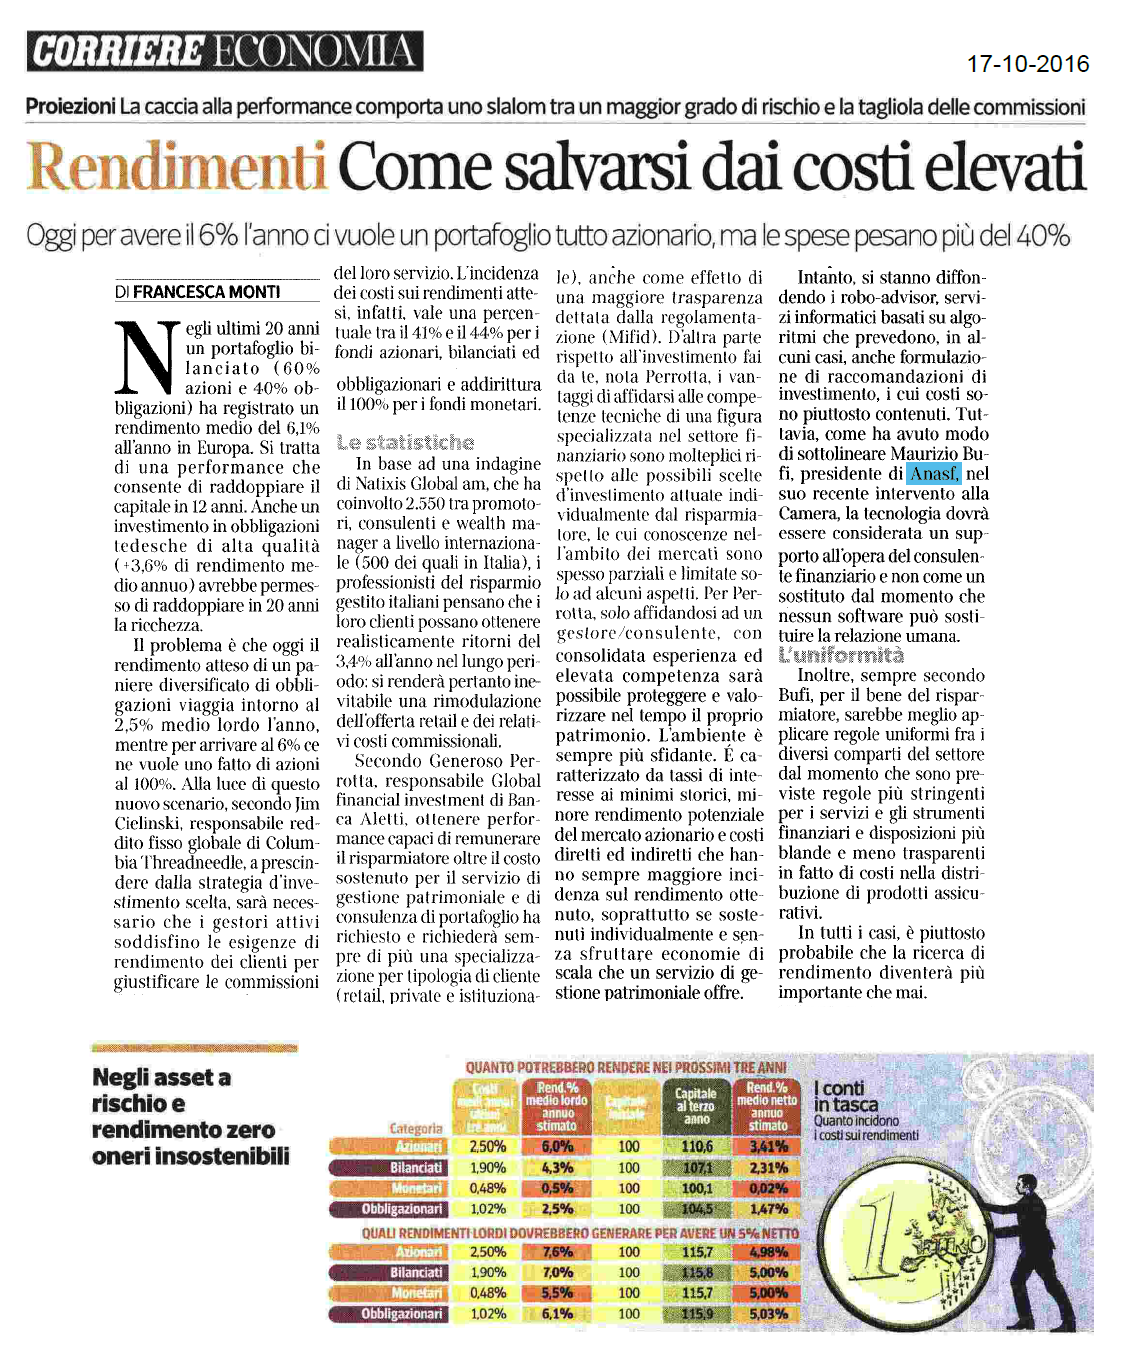 Rendimenti, come salvarsi da costi elevati